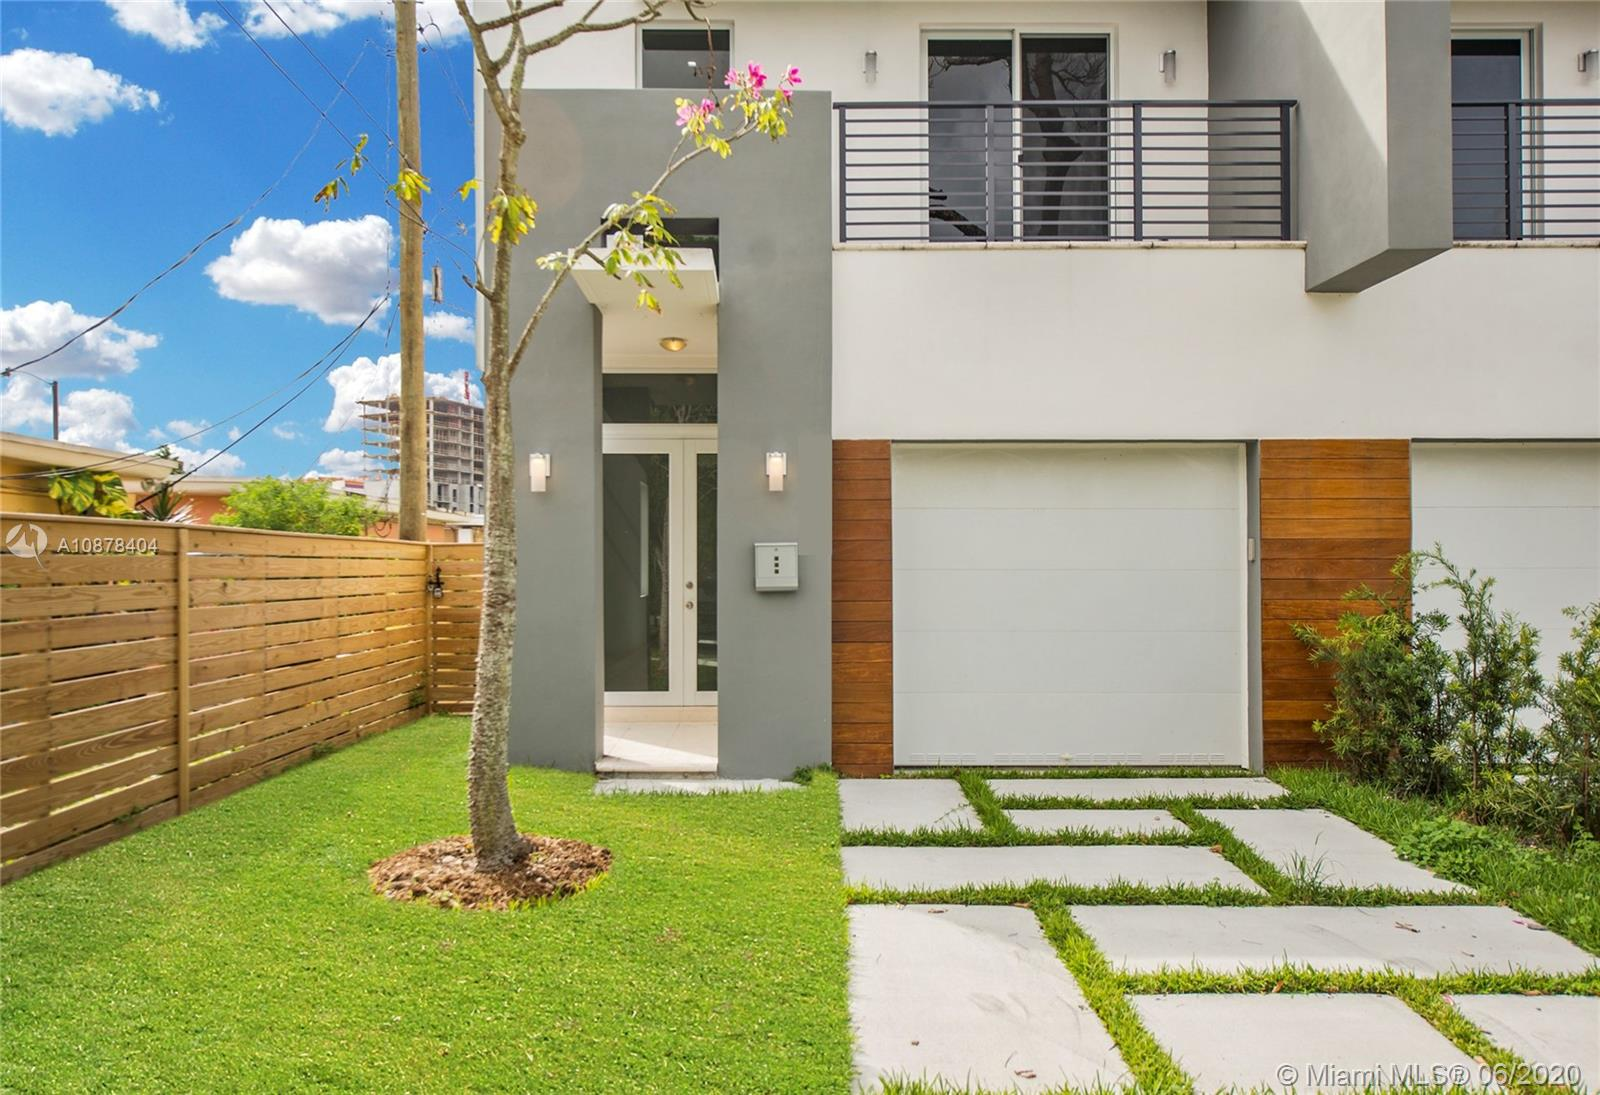 "Tropical Modern, new construction townhome in a quiet neighborhood just minutes from Coconut Grove, Coral Gables, MIA, downtown & Brickell. Light-filled open living spaces with volume ceilings, 32"" x 32"" porcelain tile & solid wood flooring, LED lighting and impact glass throughout. Custom kitchen featuring wood cabinetry, stone countertops & black stainless LG appliances, opens to family room. 3BR/3.5BA, including large master suite with balcony & spa-like master bath w/ Jacuzzi tub. Enjoy year-round entertaining on private outdoor terrace with tropical pool. 1 CG. Close to major expressways for easy access throughout South Florida. (Please request via showing time)"